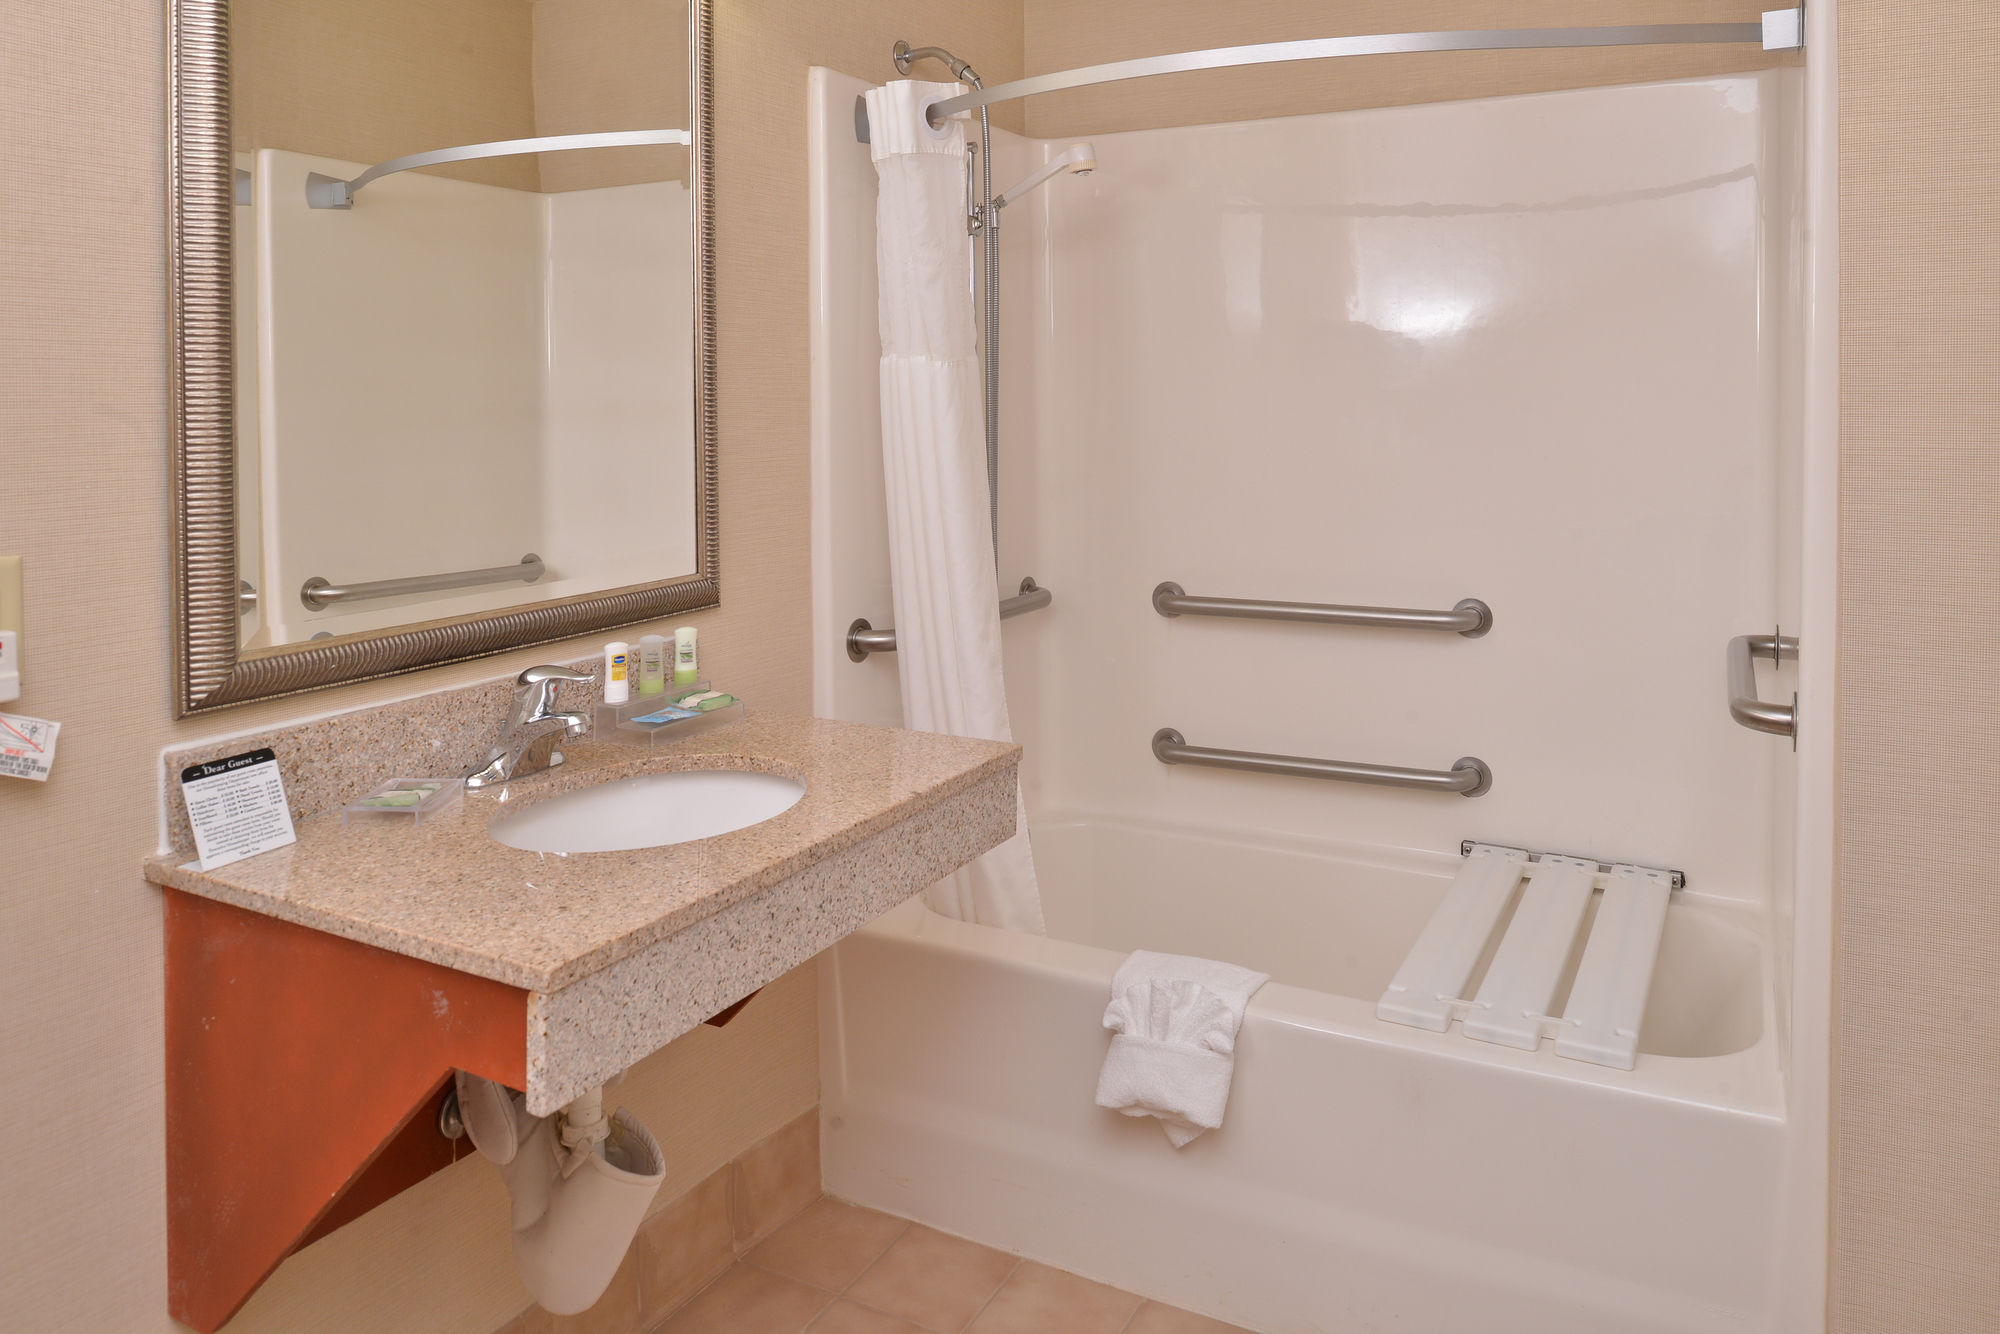 Country Inn & Suites by Carlson, Stone Mountain in Stone Mountain, GA